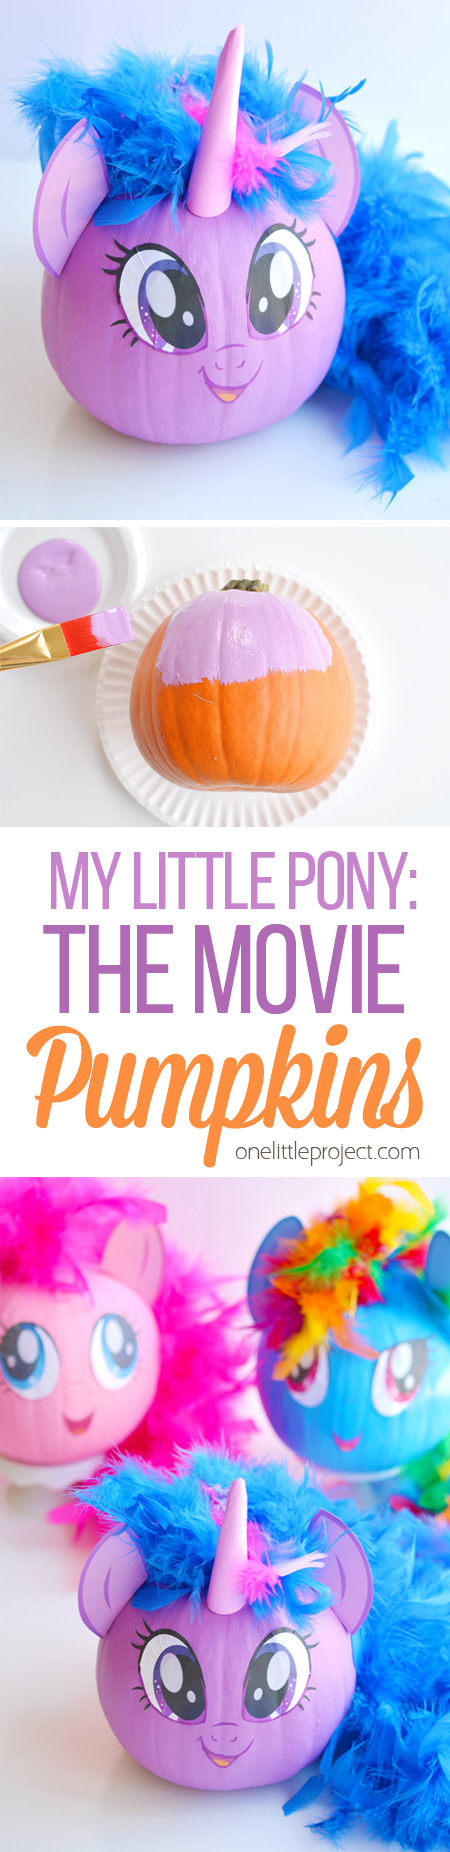 These No Carve My Little Pony Pumpkins Are SO EASY! Seriously, You Paint